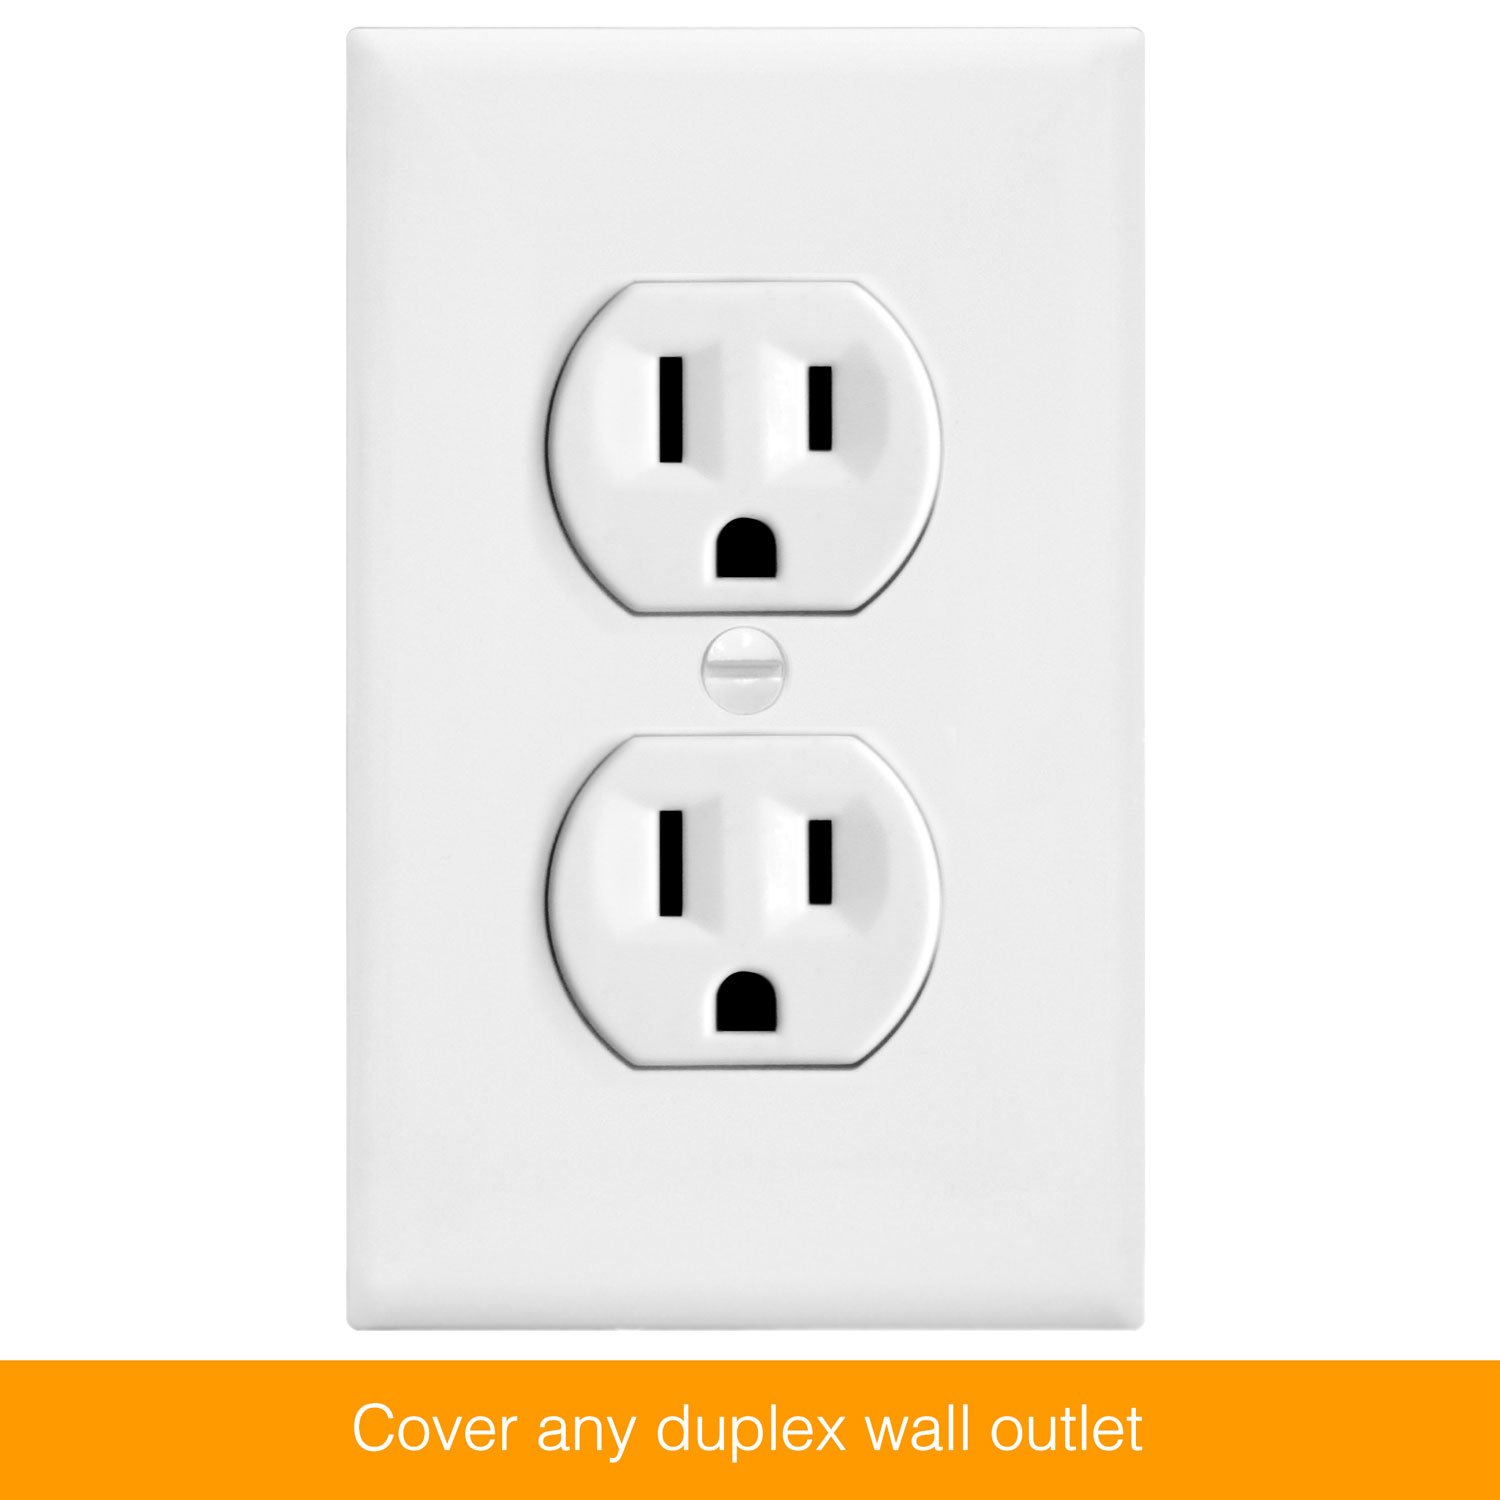 ENERLITES Duplex Receptacle Outlet Wall Plate, Size 1-Gang 4.50'' x 2.76'', Polycarbonate Thermoplastic, 8821-W-10PCS, White (10 Pack) by ENERLITES (Image #3)